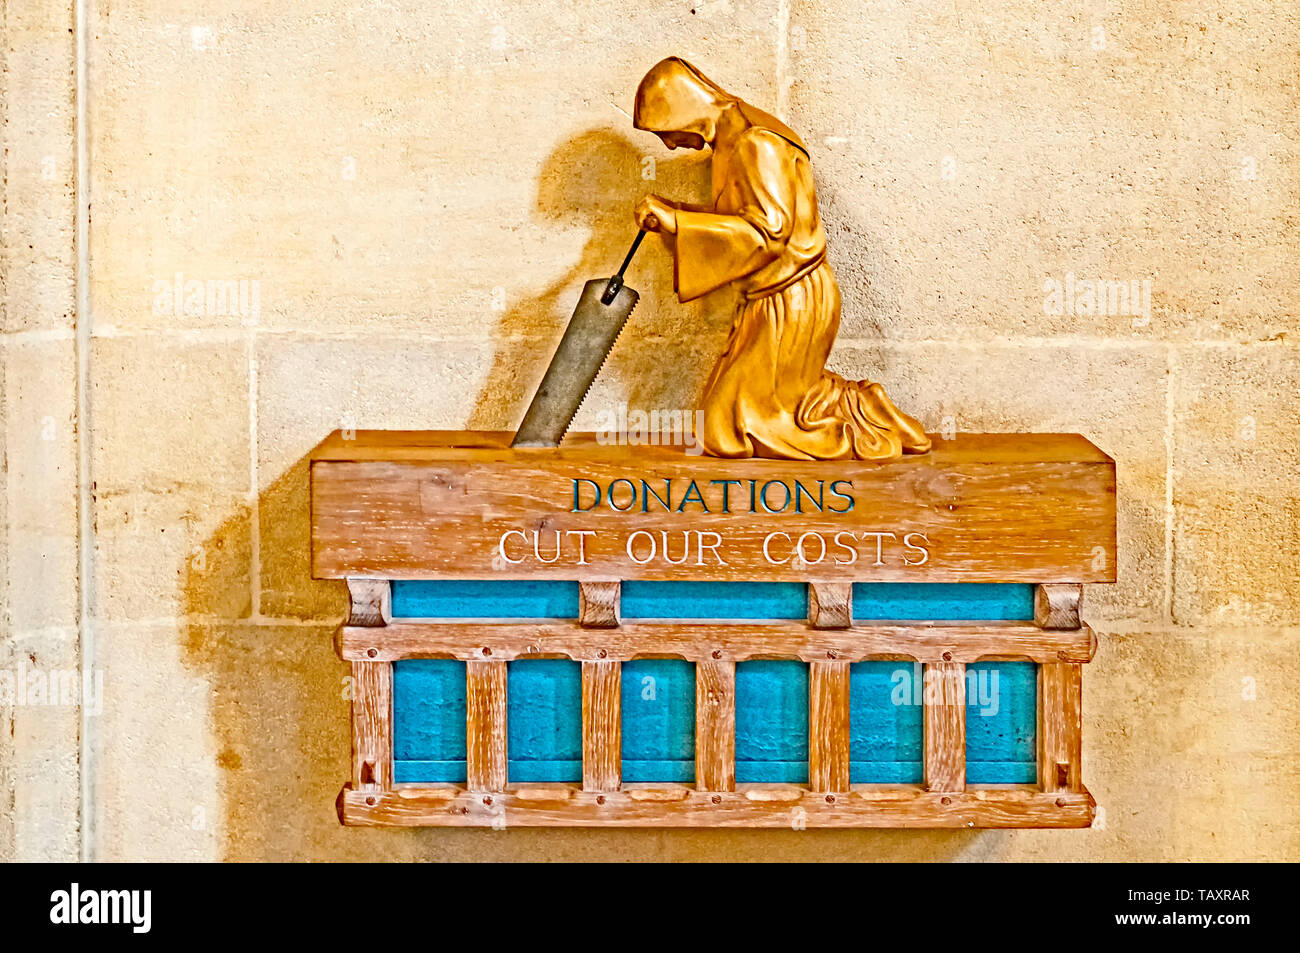 Bury St. Edmunds (Suffolk, England): Donation box in the  church - Stock Image